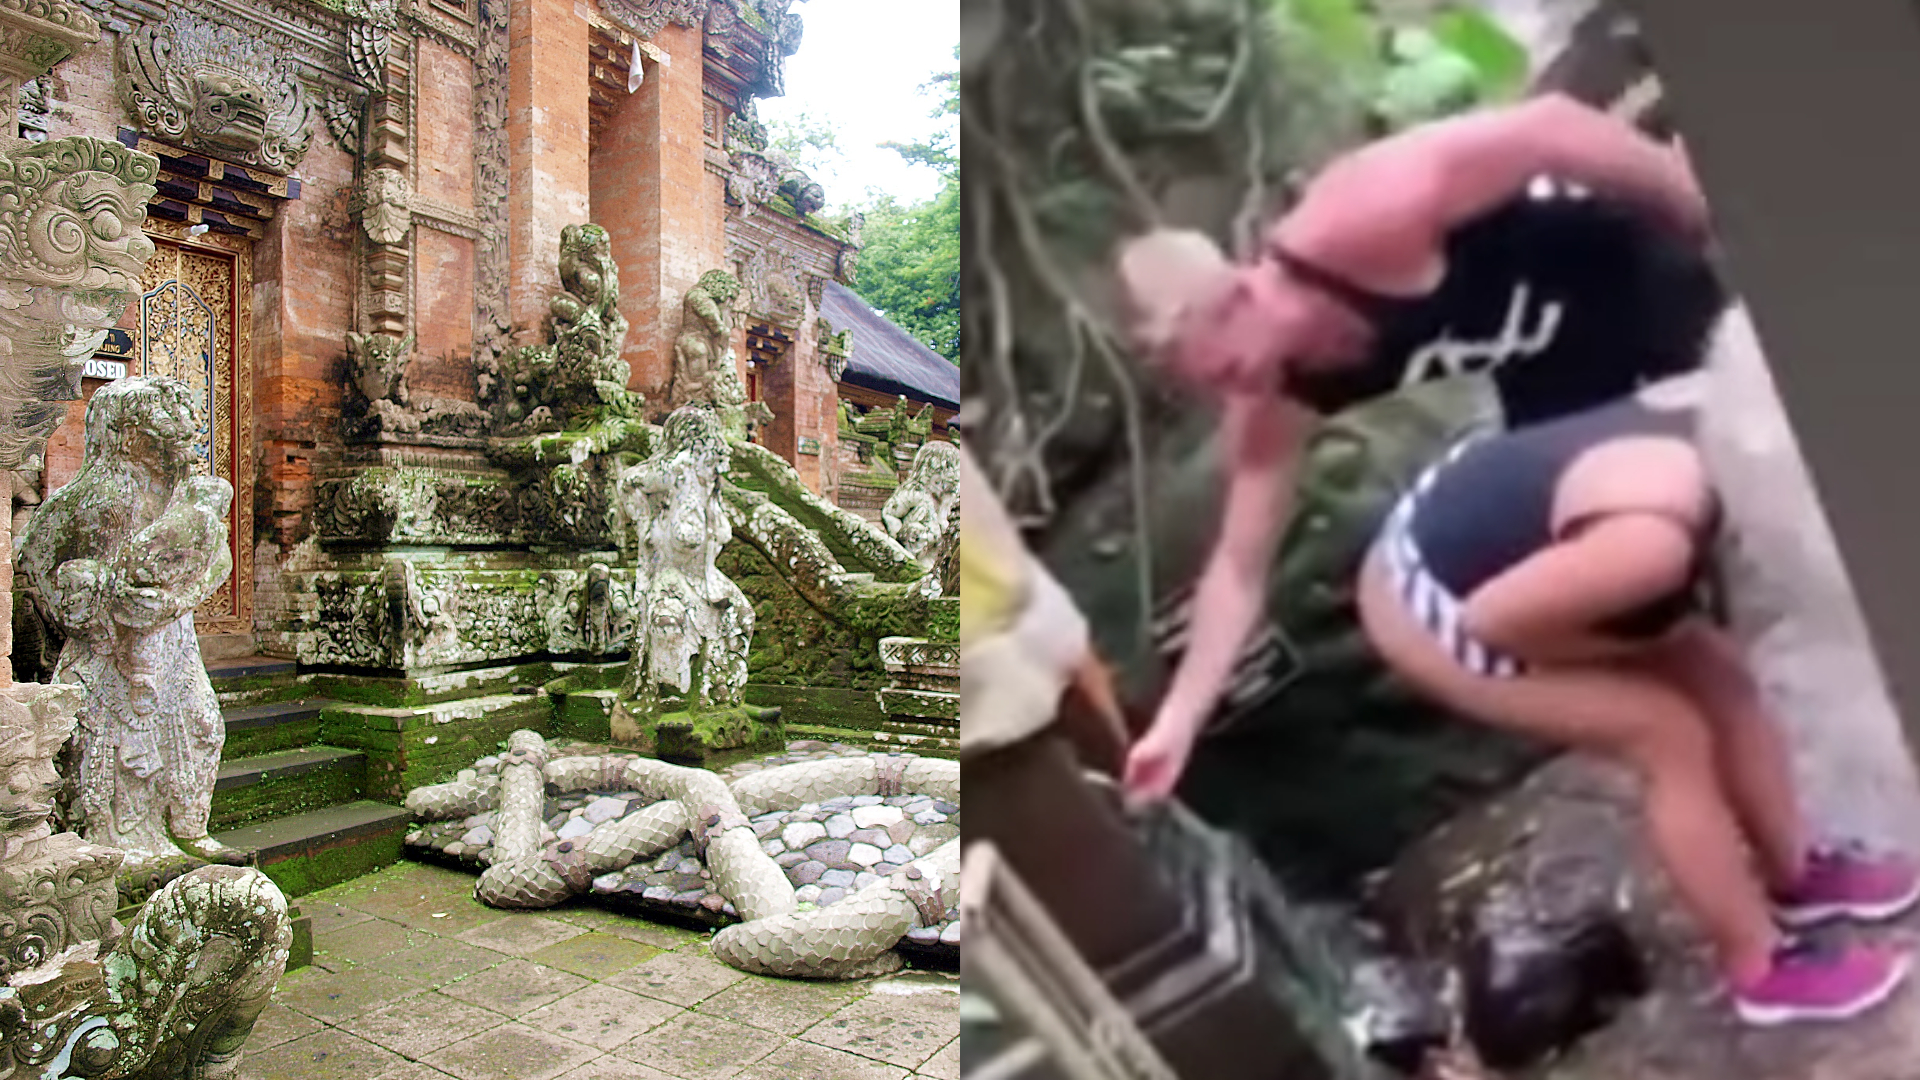 Fitness Influencer Washes Her Butt With Holy Water from Temple in Bali, Angers Locals